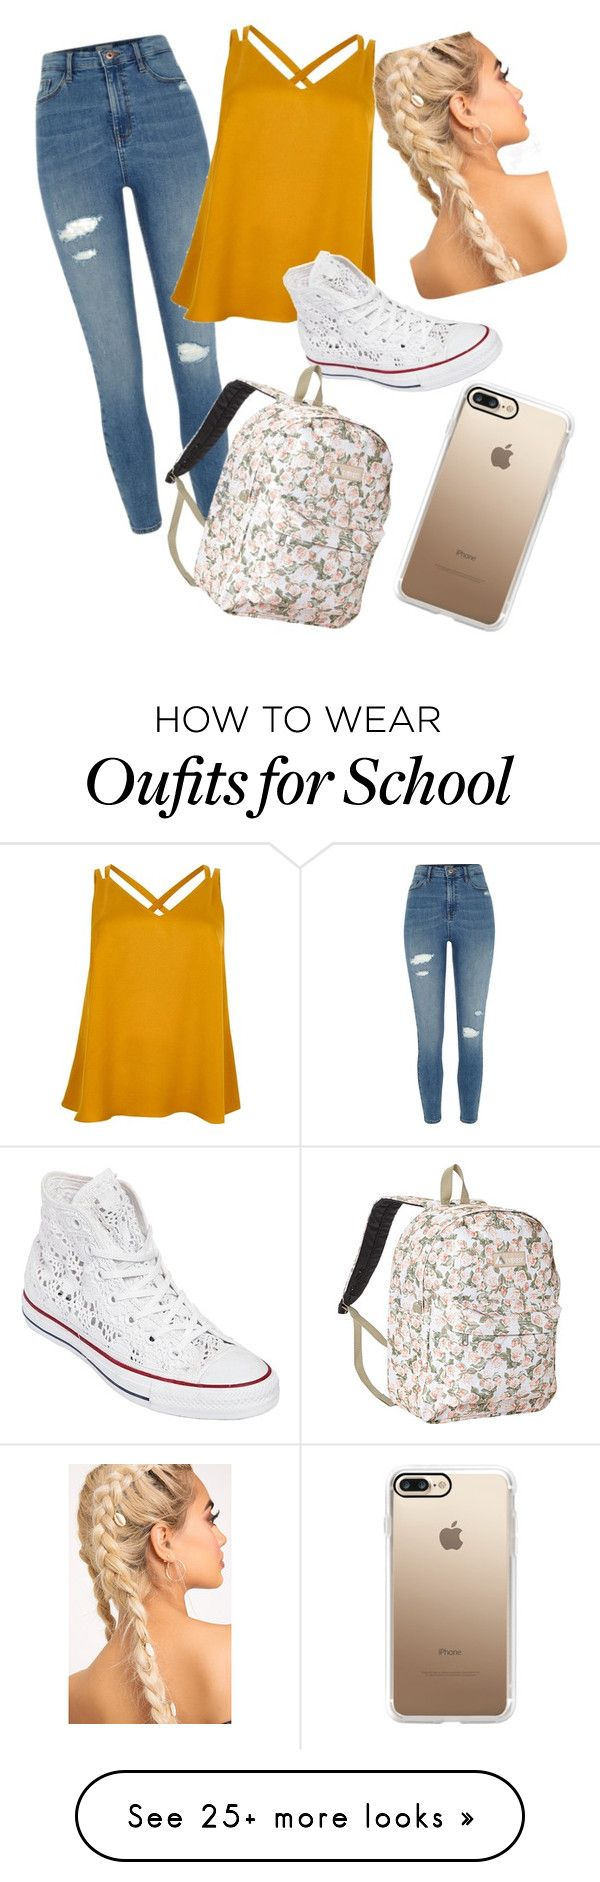 """Untitled #1"" by s-worsey on Polyvore featuring River Island, Converse, Everest and Casetify"